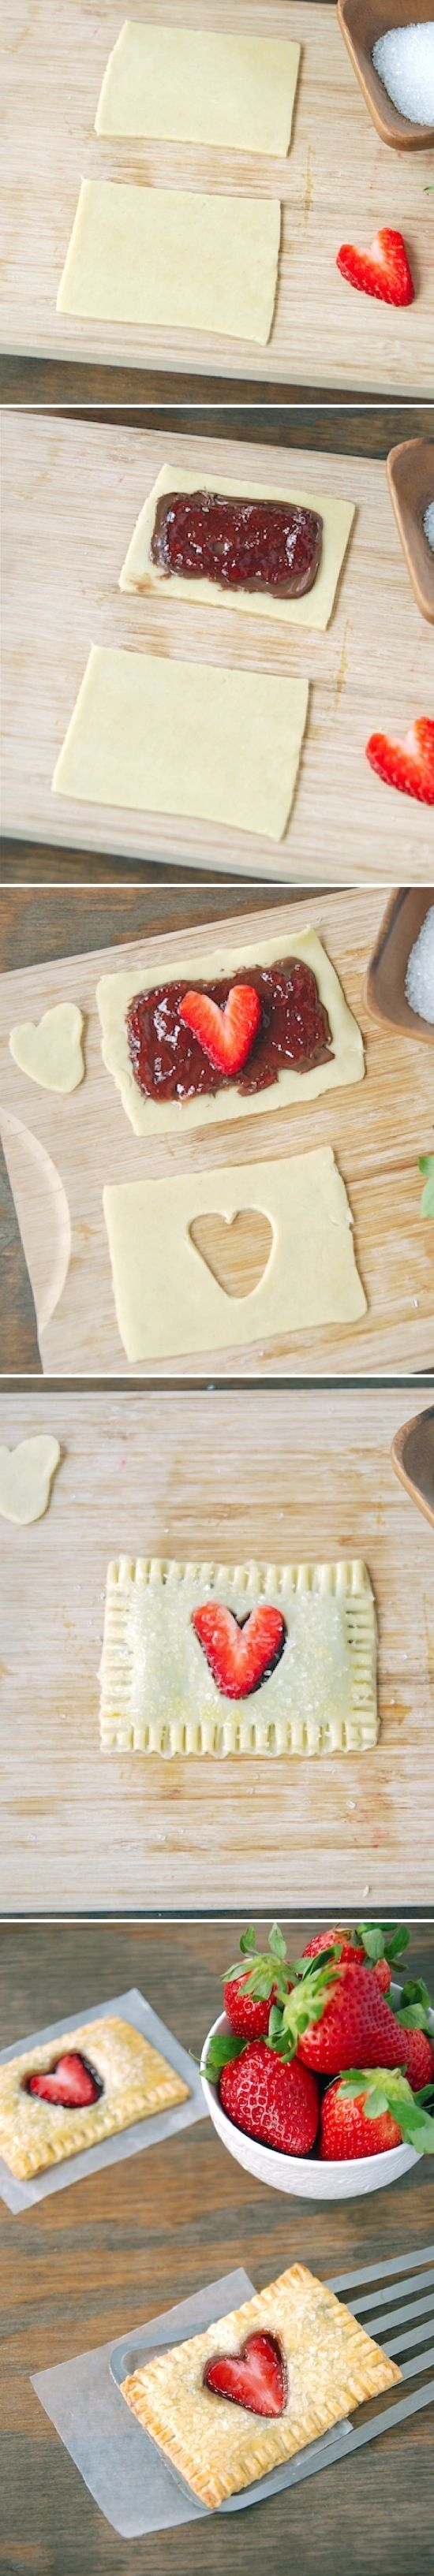 Strawberry Heart Pop Tarts (with Nutella!) would be so cute for valentines day!